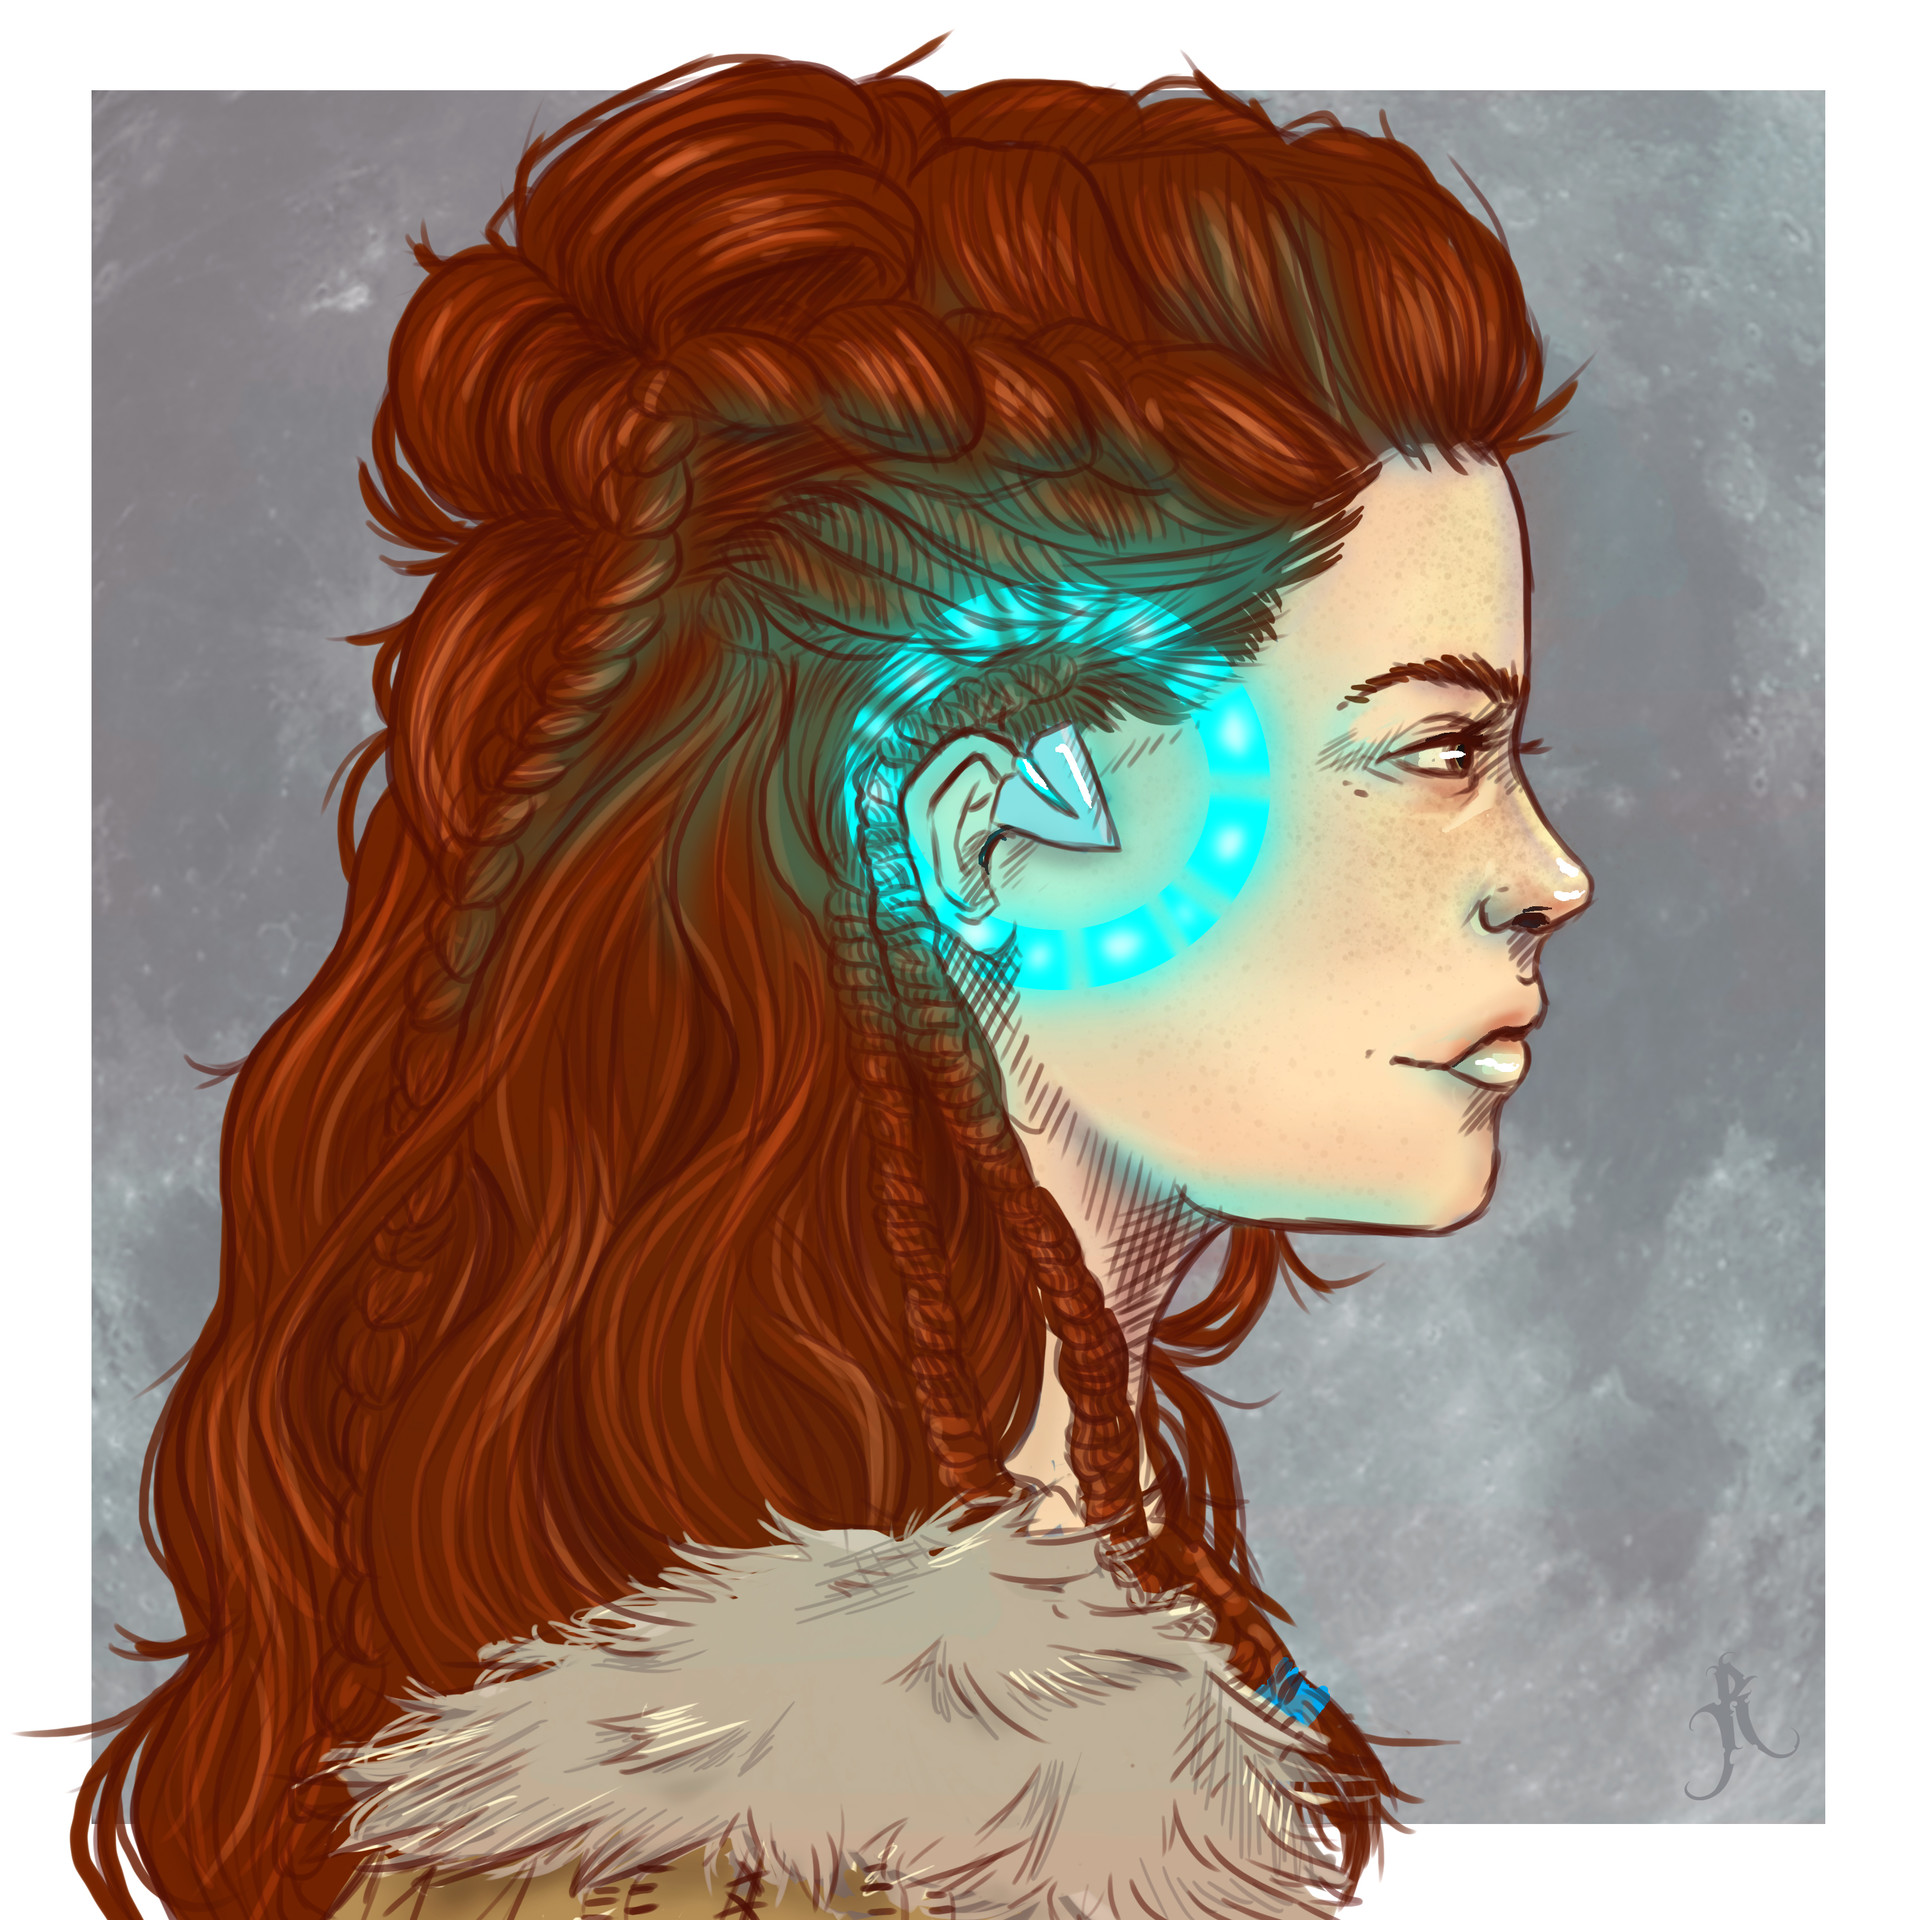 Artstation Aloy Horizon Zero Dawn Fan Art Rachelle Doornbos